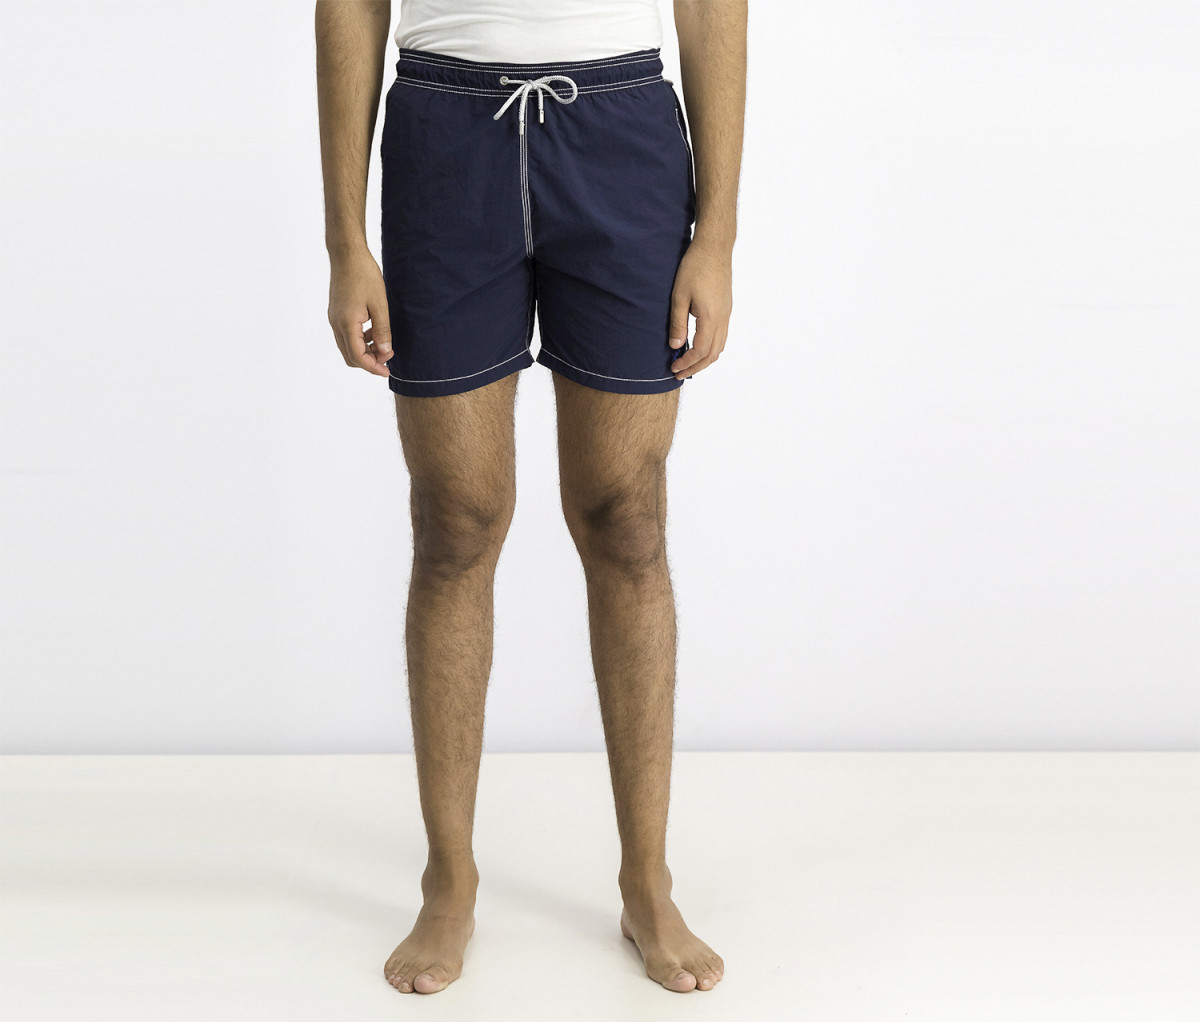 Hackett Mens Swim Trunk  Navy